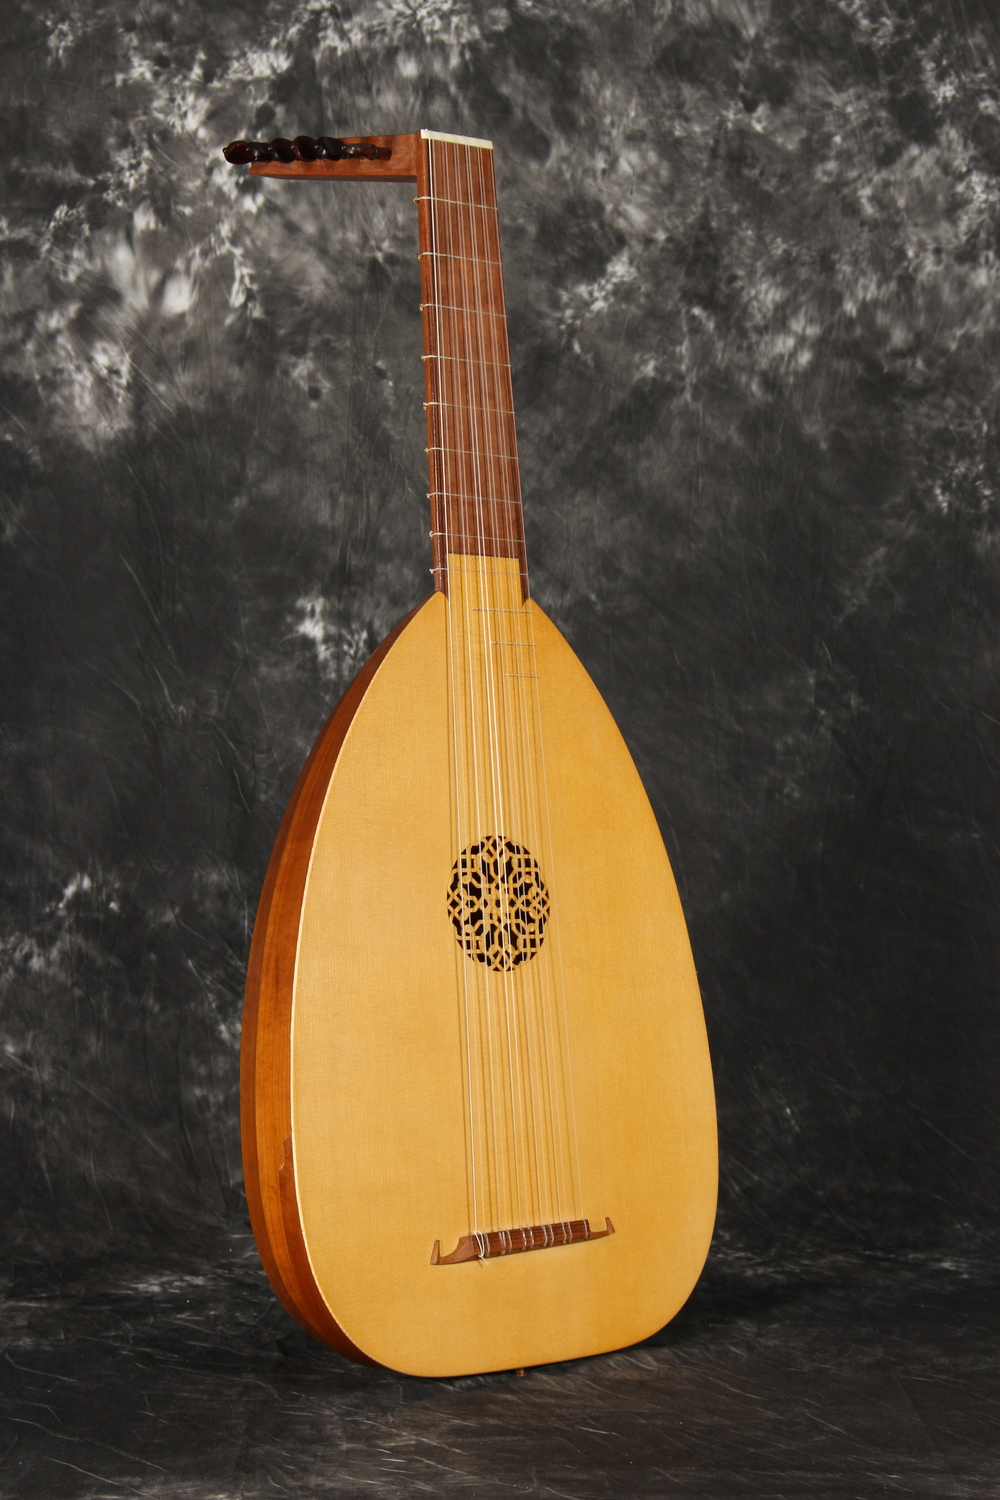 Six course Recercar lute